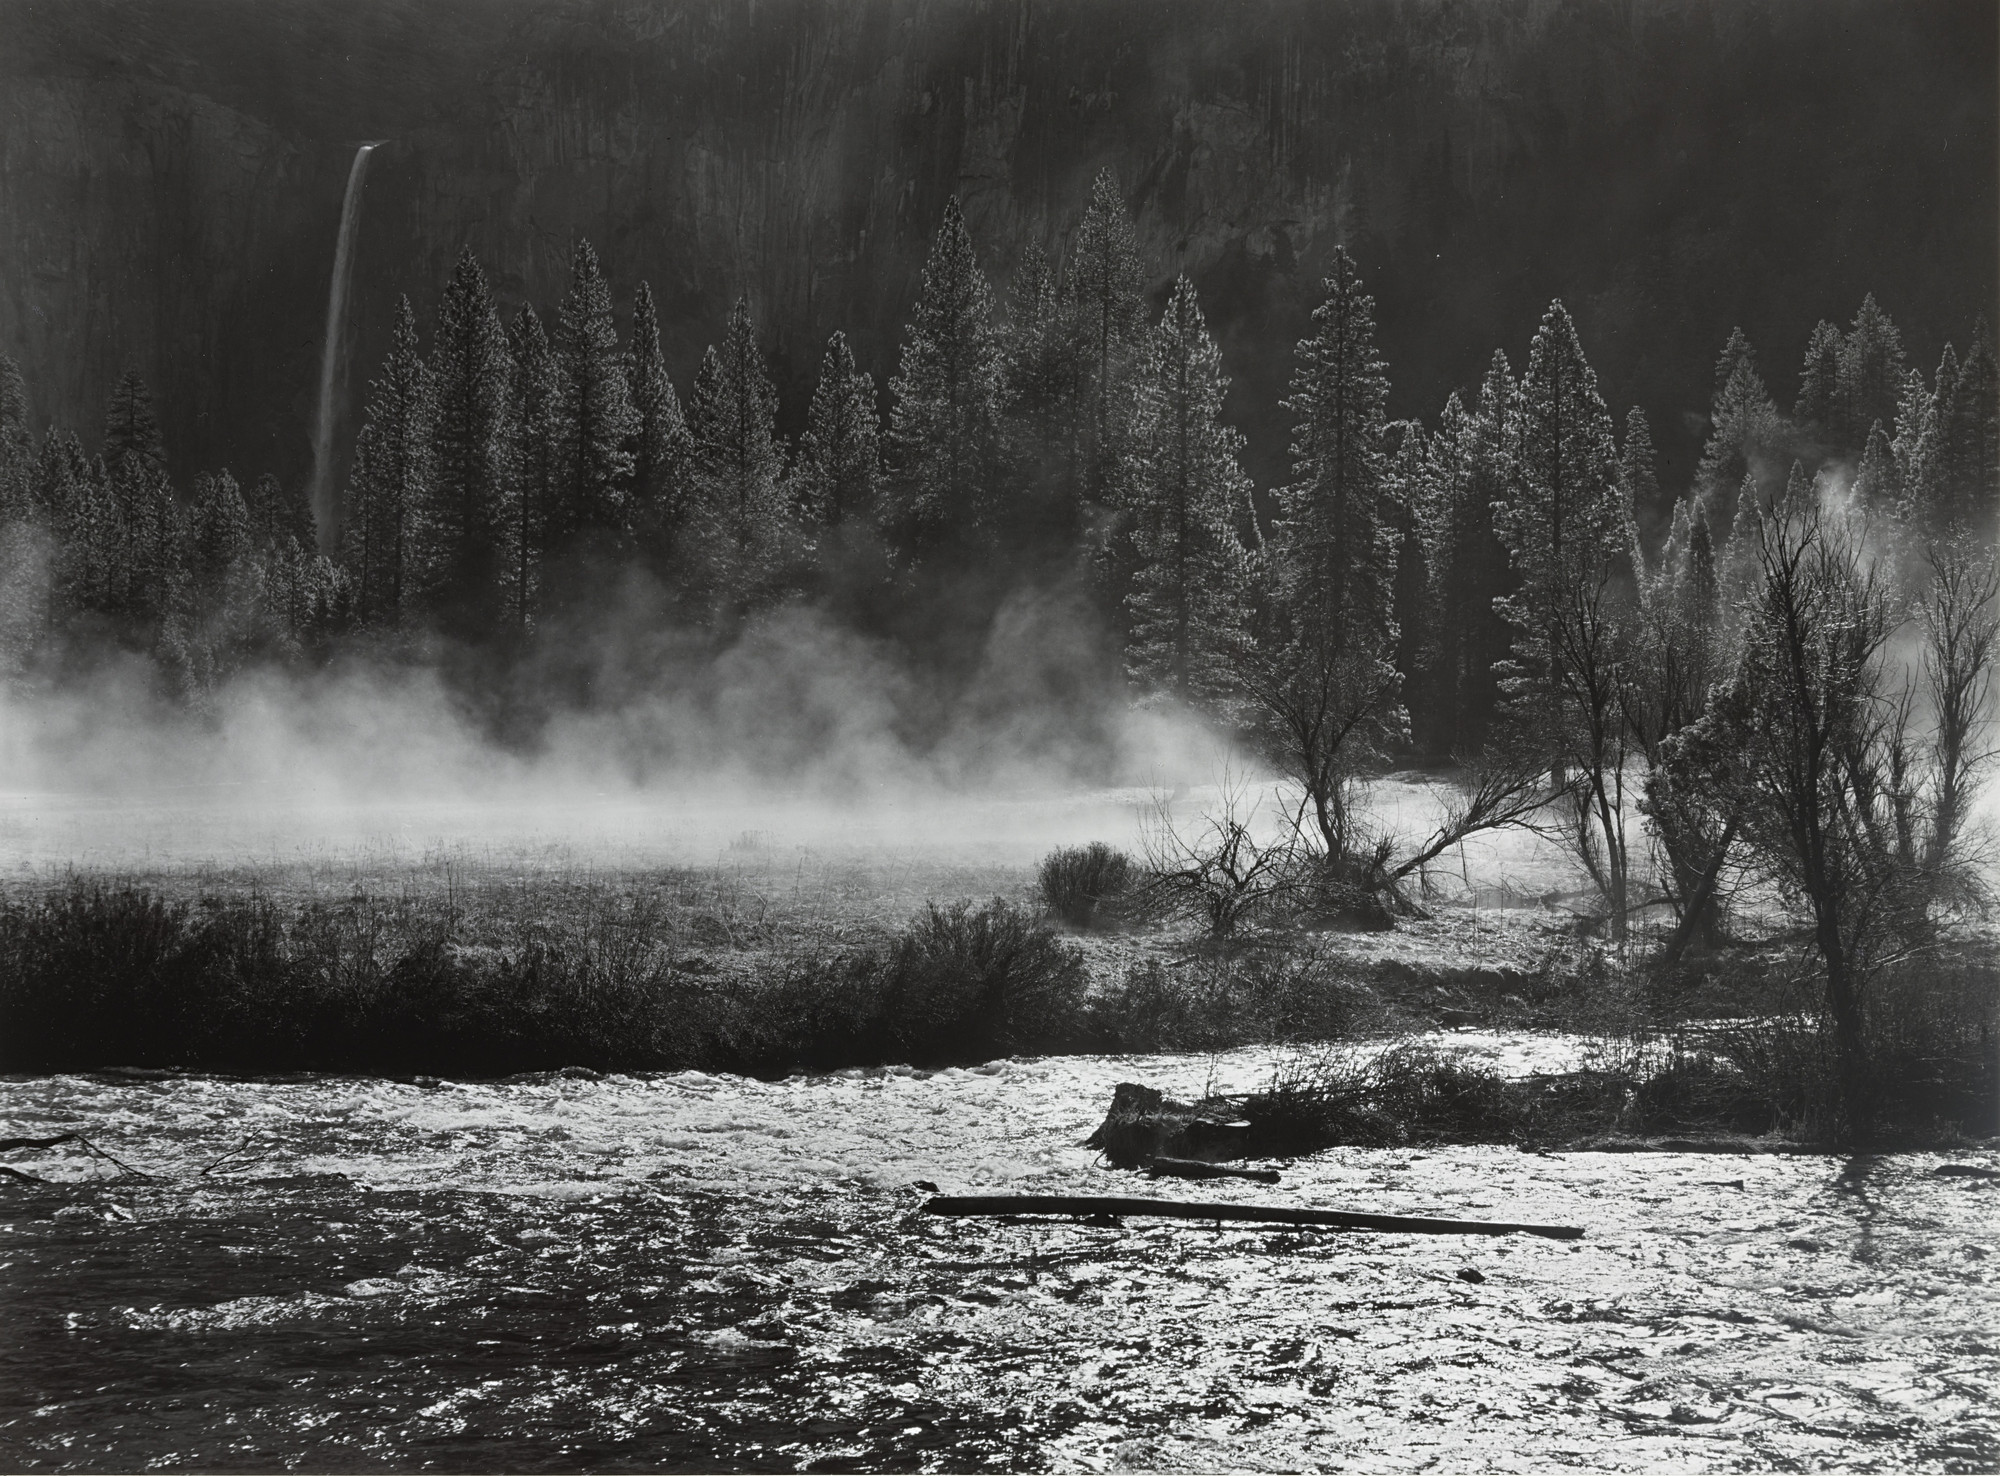 Ansel Adams. Morning Mist, Merced River and Bridalveil Fall, Yosemite Valley, California. c. 1945